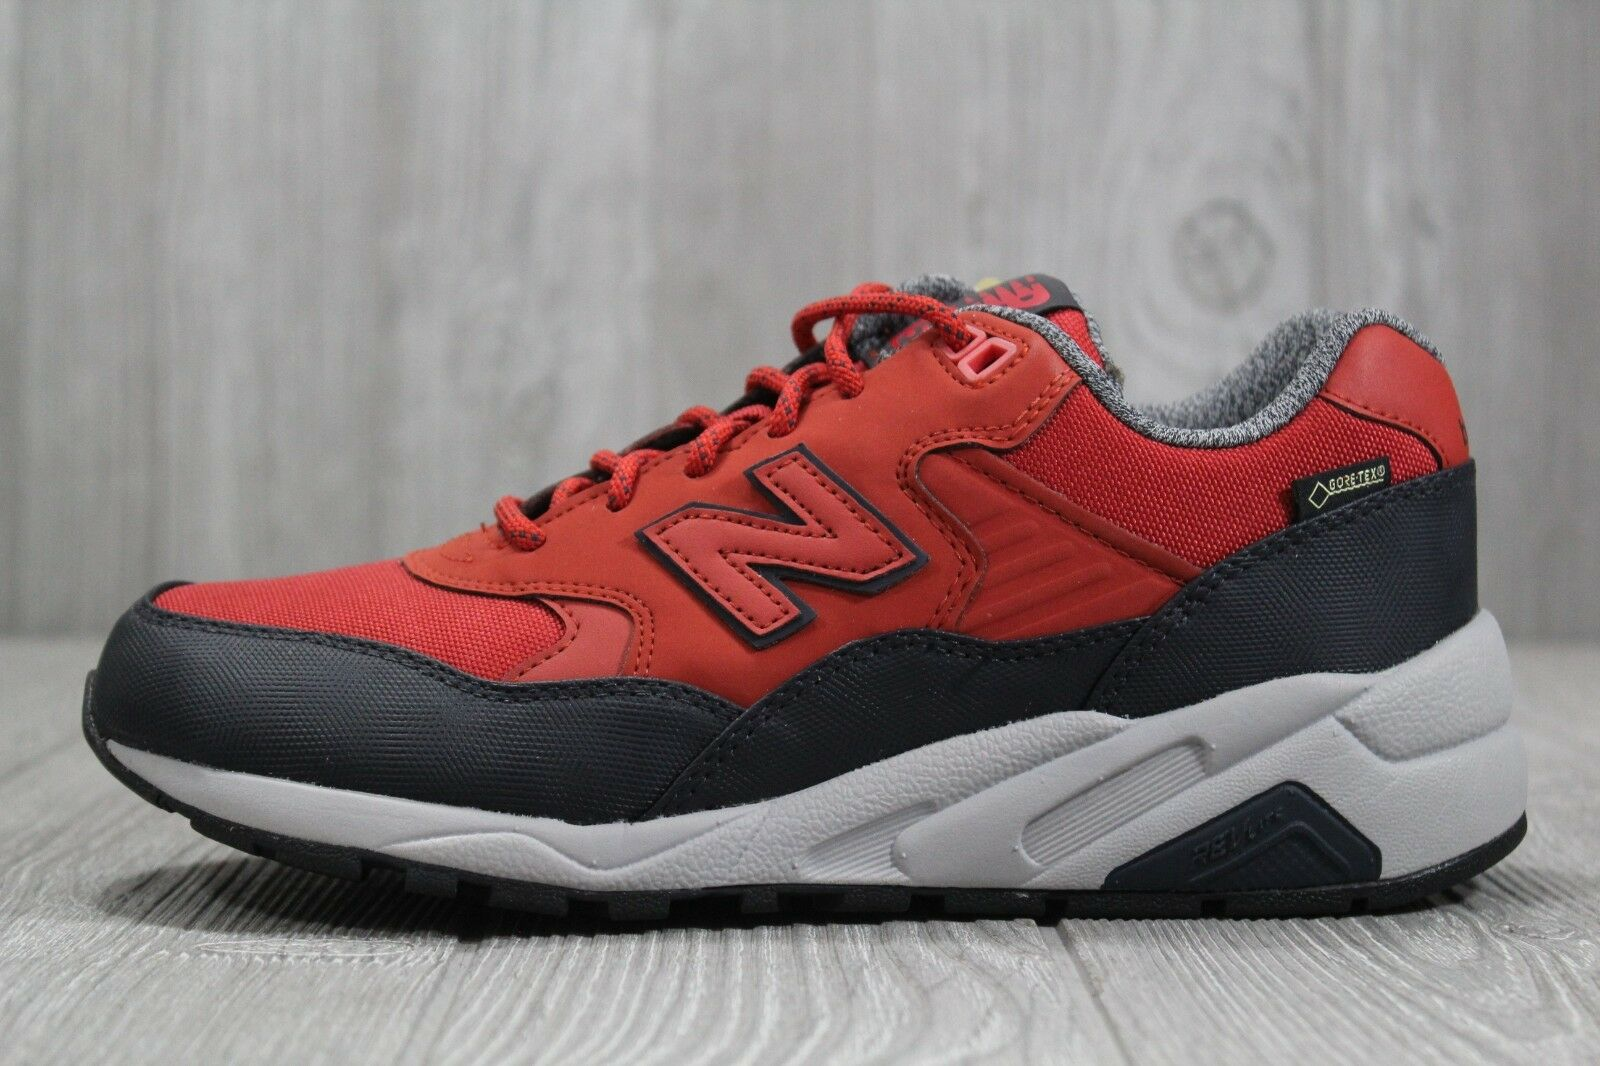 35 New Balance 580 Gore-Tex Outdoor schuhe Waterproof Clay Navy MRT580XR 6.5 5.5